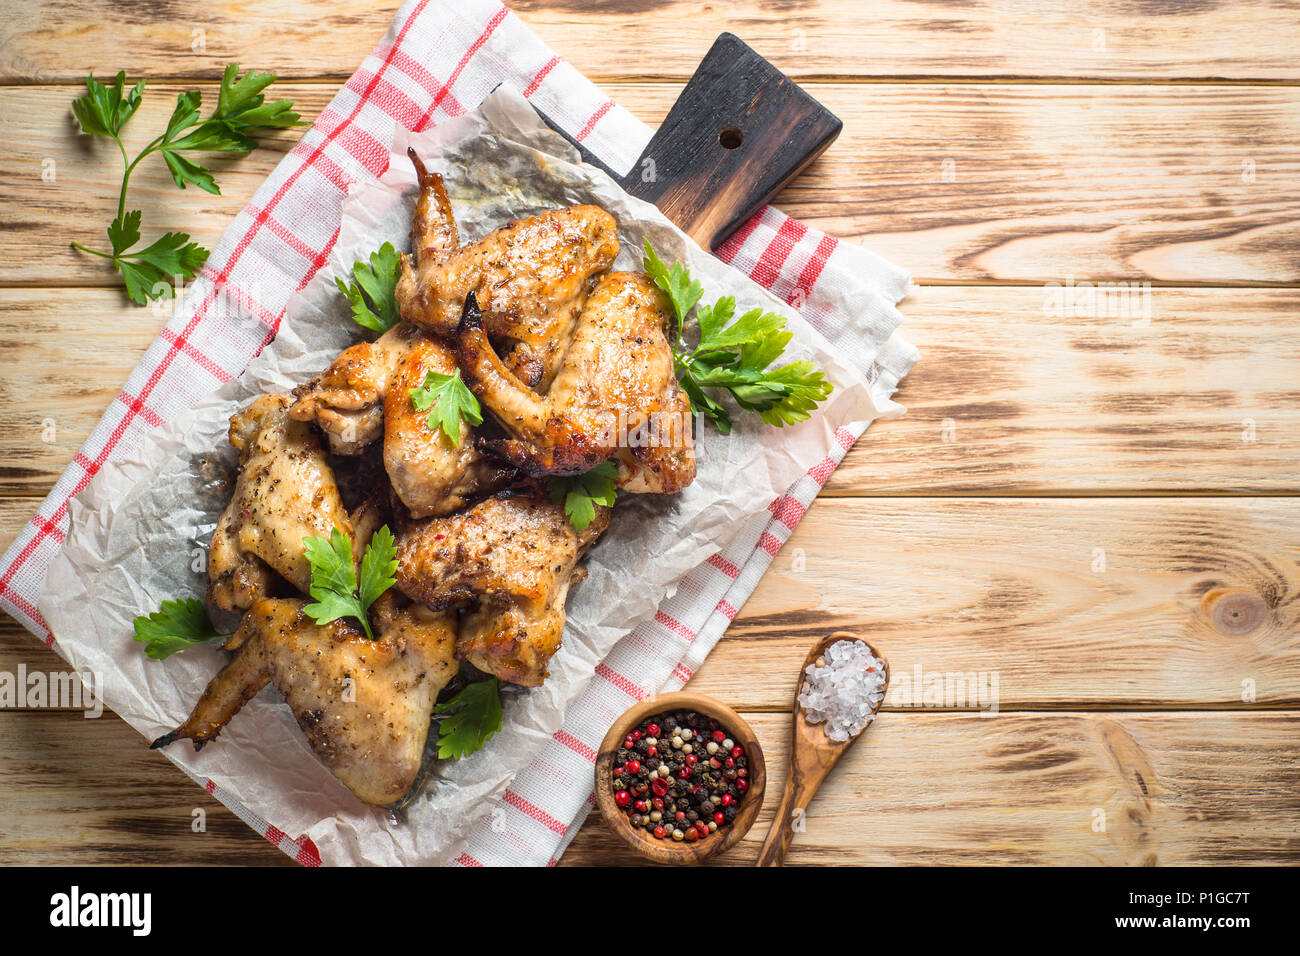 Fried chicken wings of barbecue on wooden table. Top view with copy space. - Stock Image